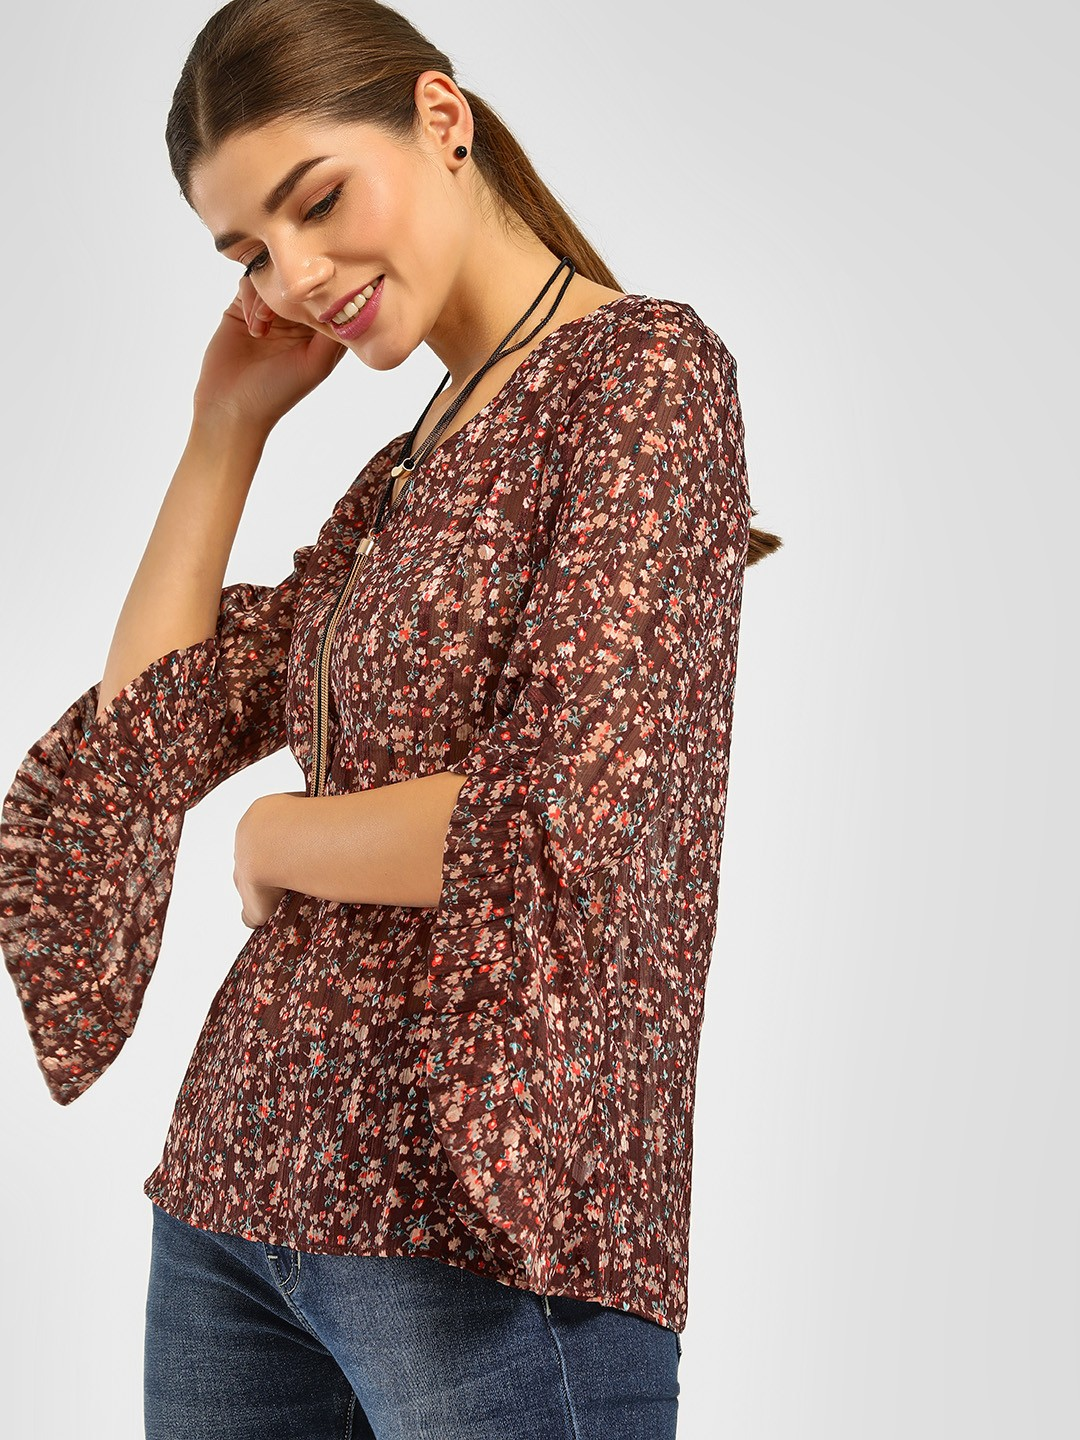 Cover Story Print Ditsy Floral Print Sheer Blouse 1